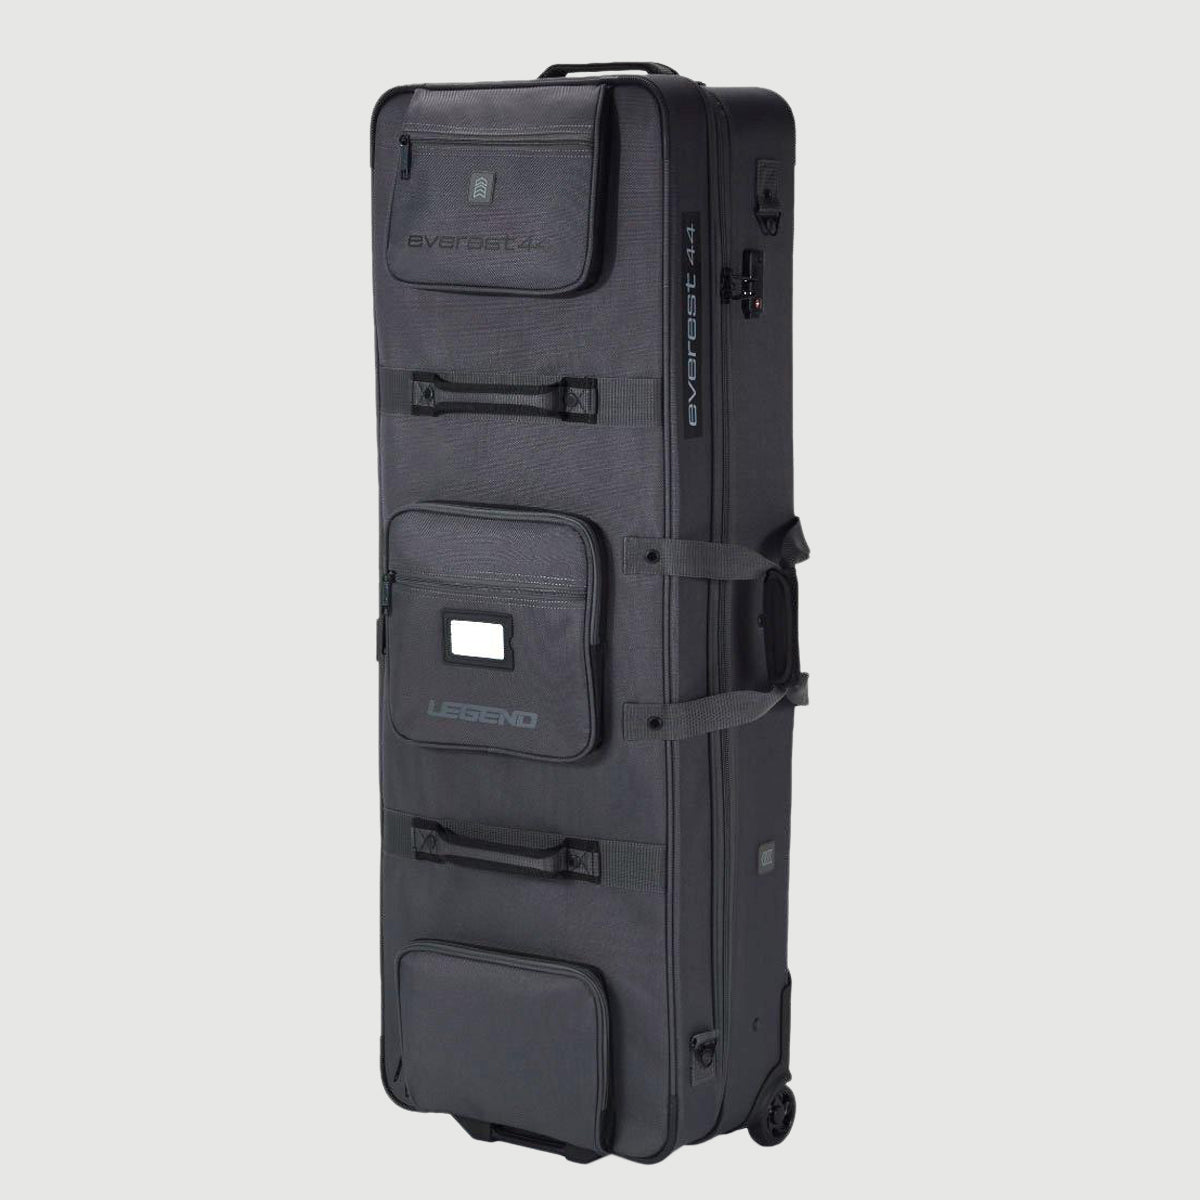 Legend Everest Hybrid Roller Bow Case - Airline Approved, TSA Lock-Legend Outdoor Industries